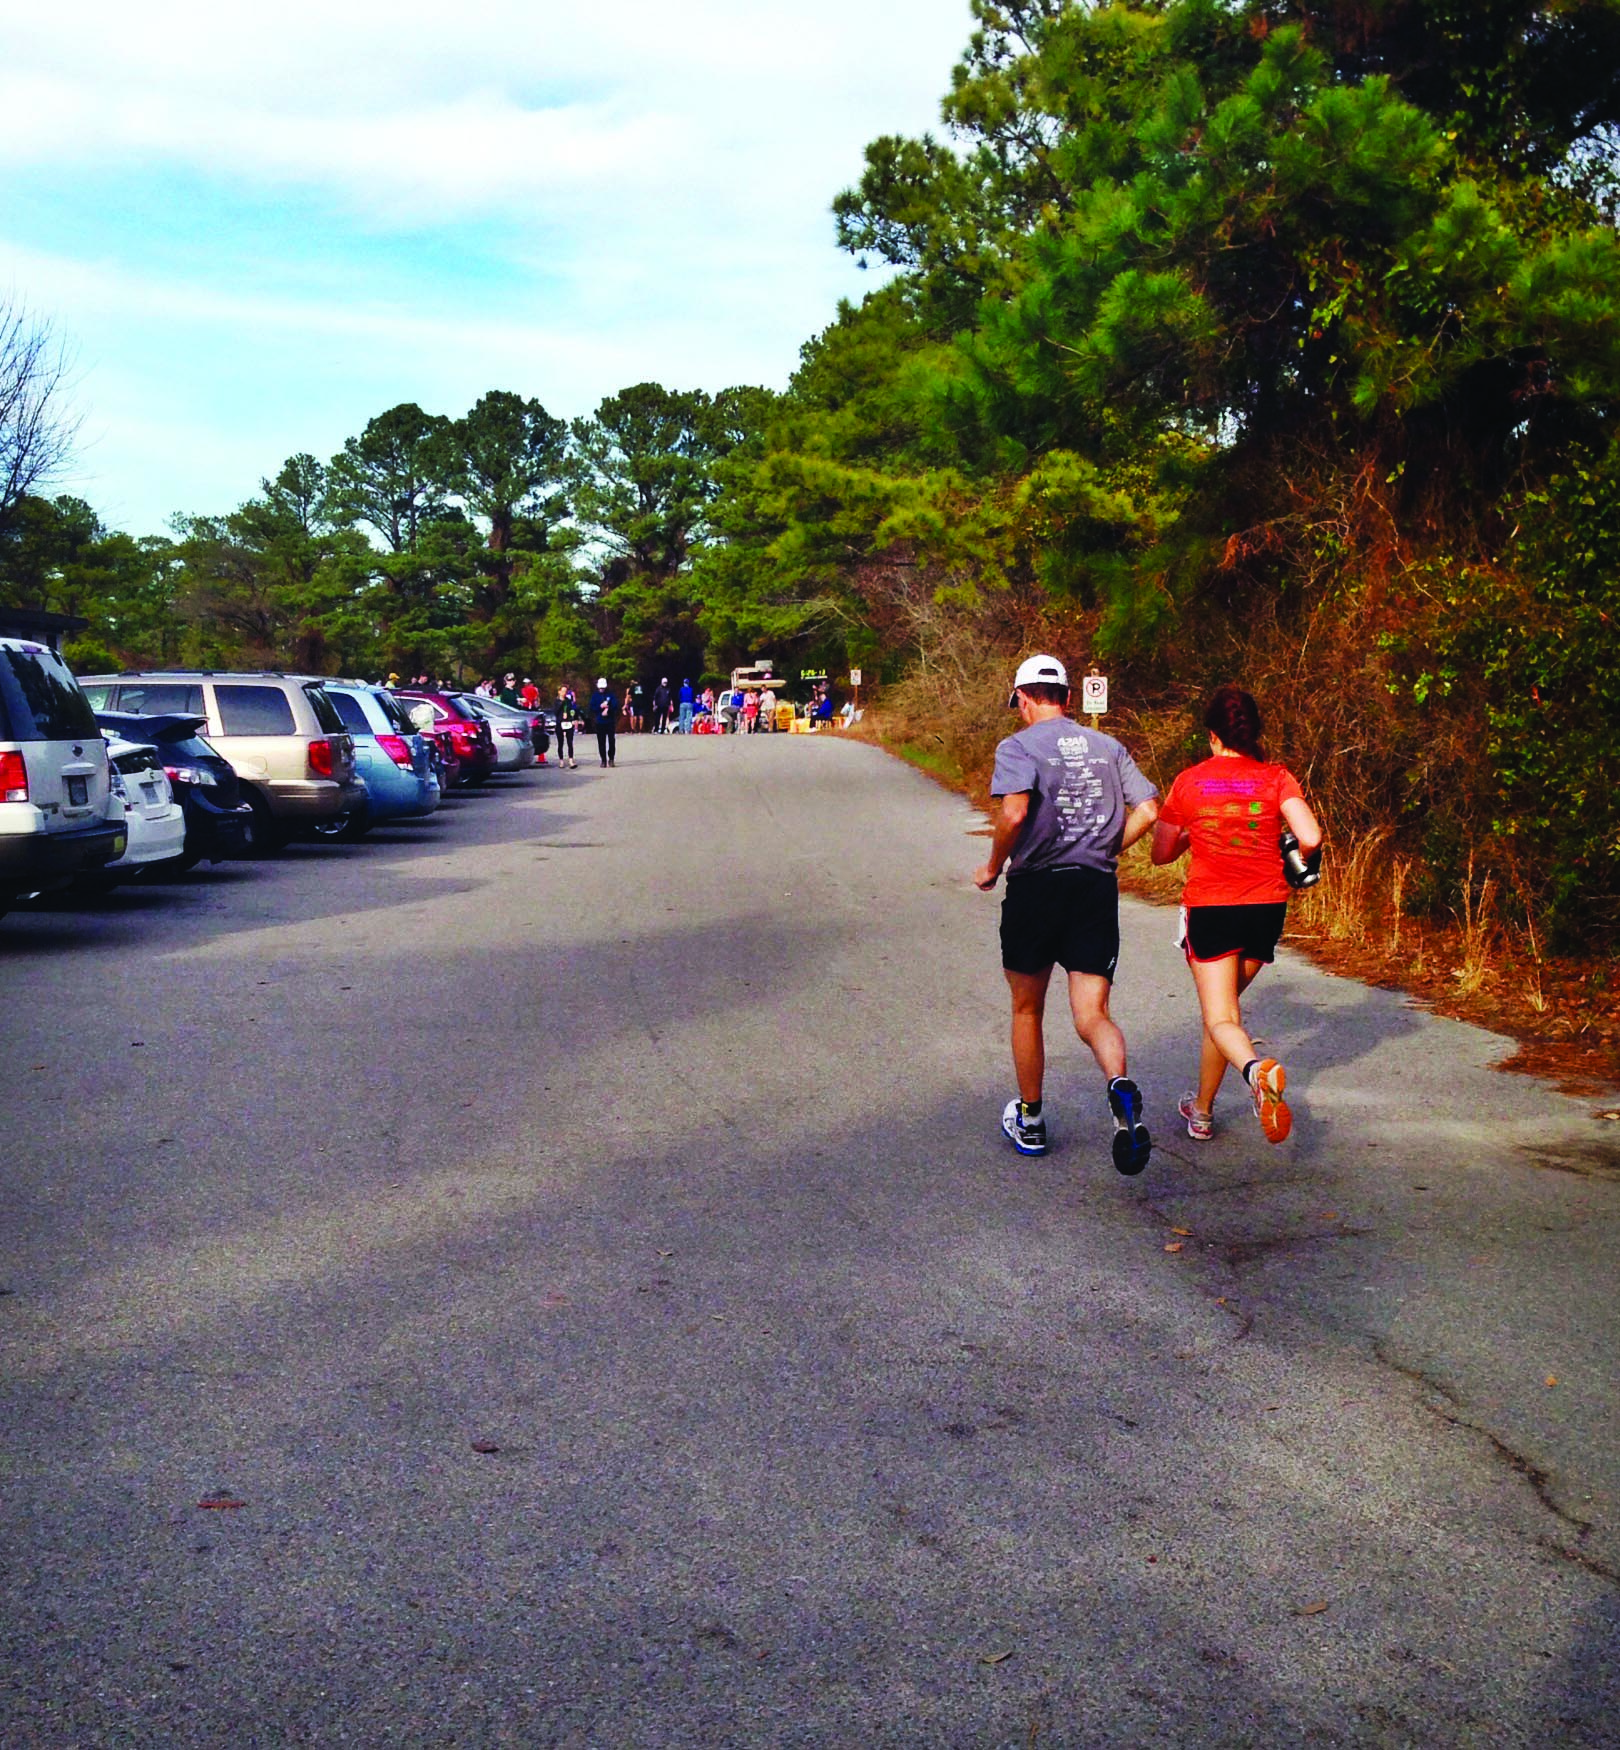 Smucker father and daughter run together